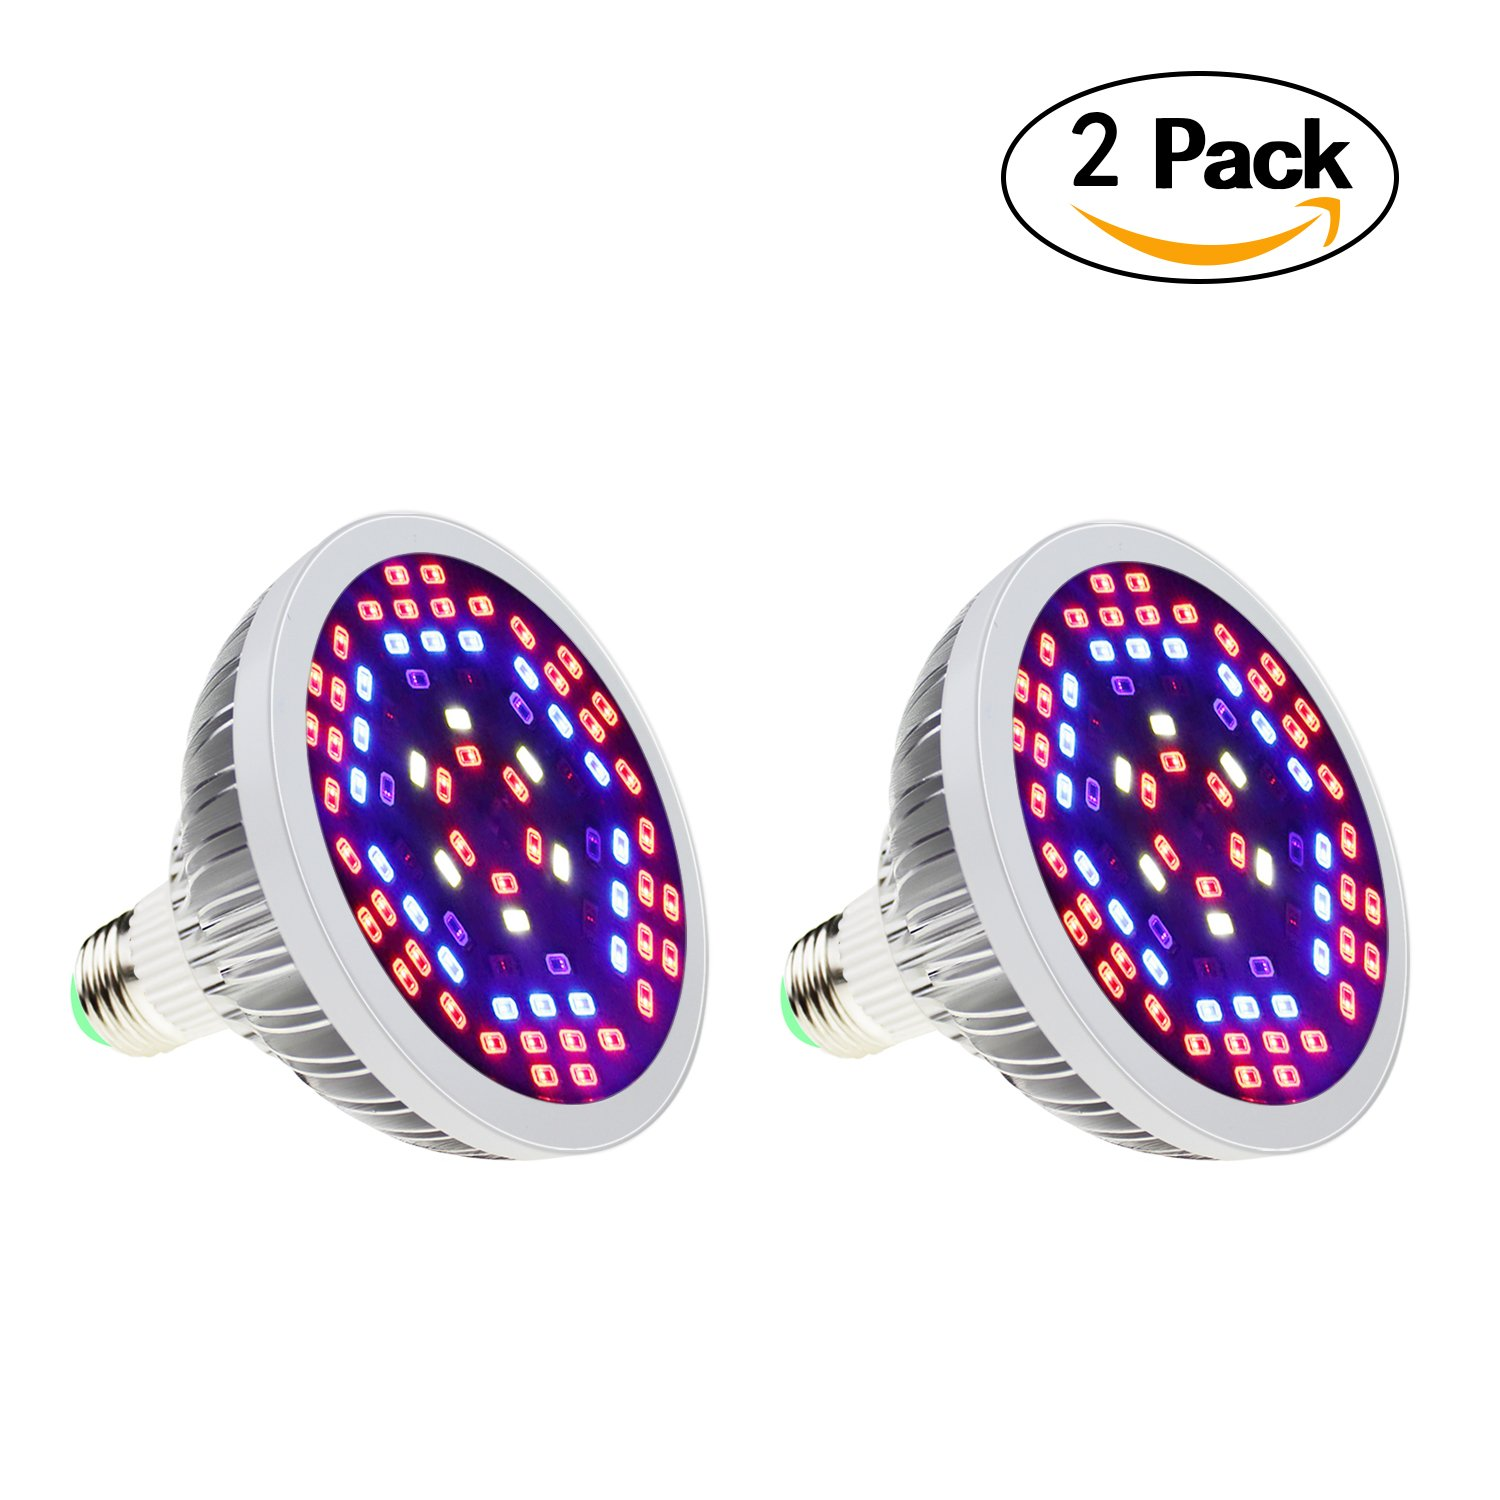 SHEKAR 50W Full Spectrum LED Plant Grow Light Bulb with Shield | Growing Lamp for Home, Indoor Garden Greenhouse and Hydroponic Aquatic (E27, 78LEDs)